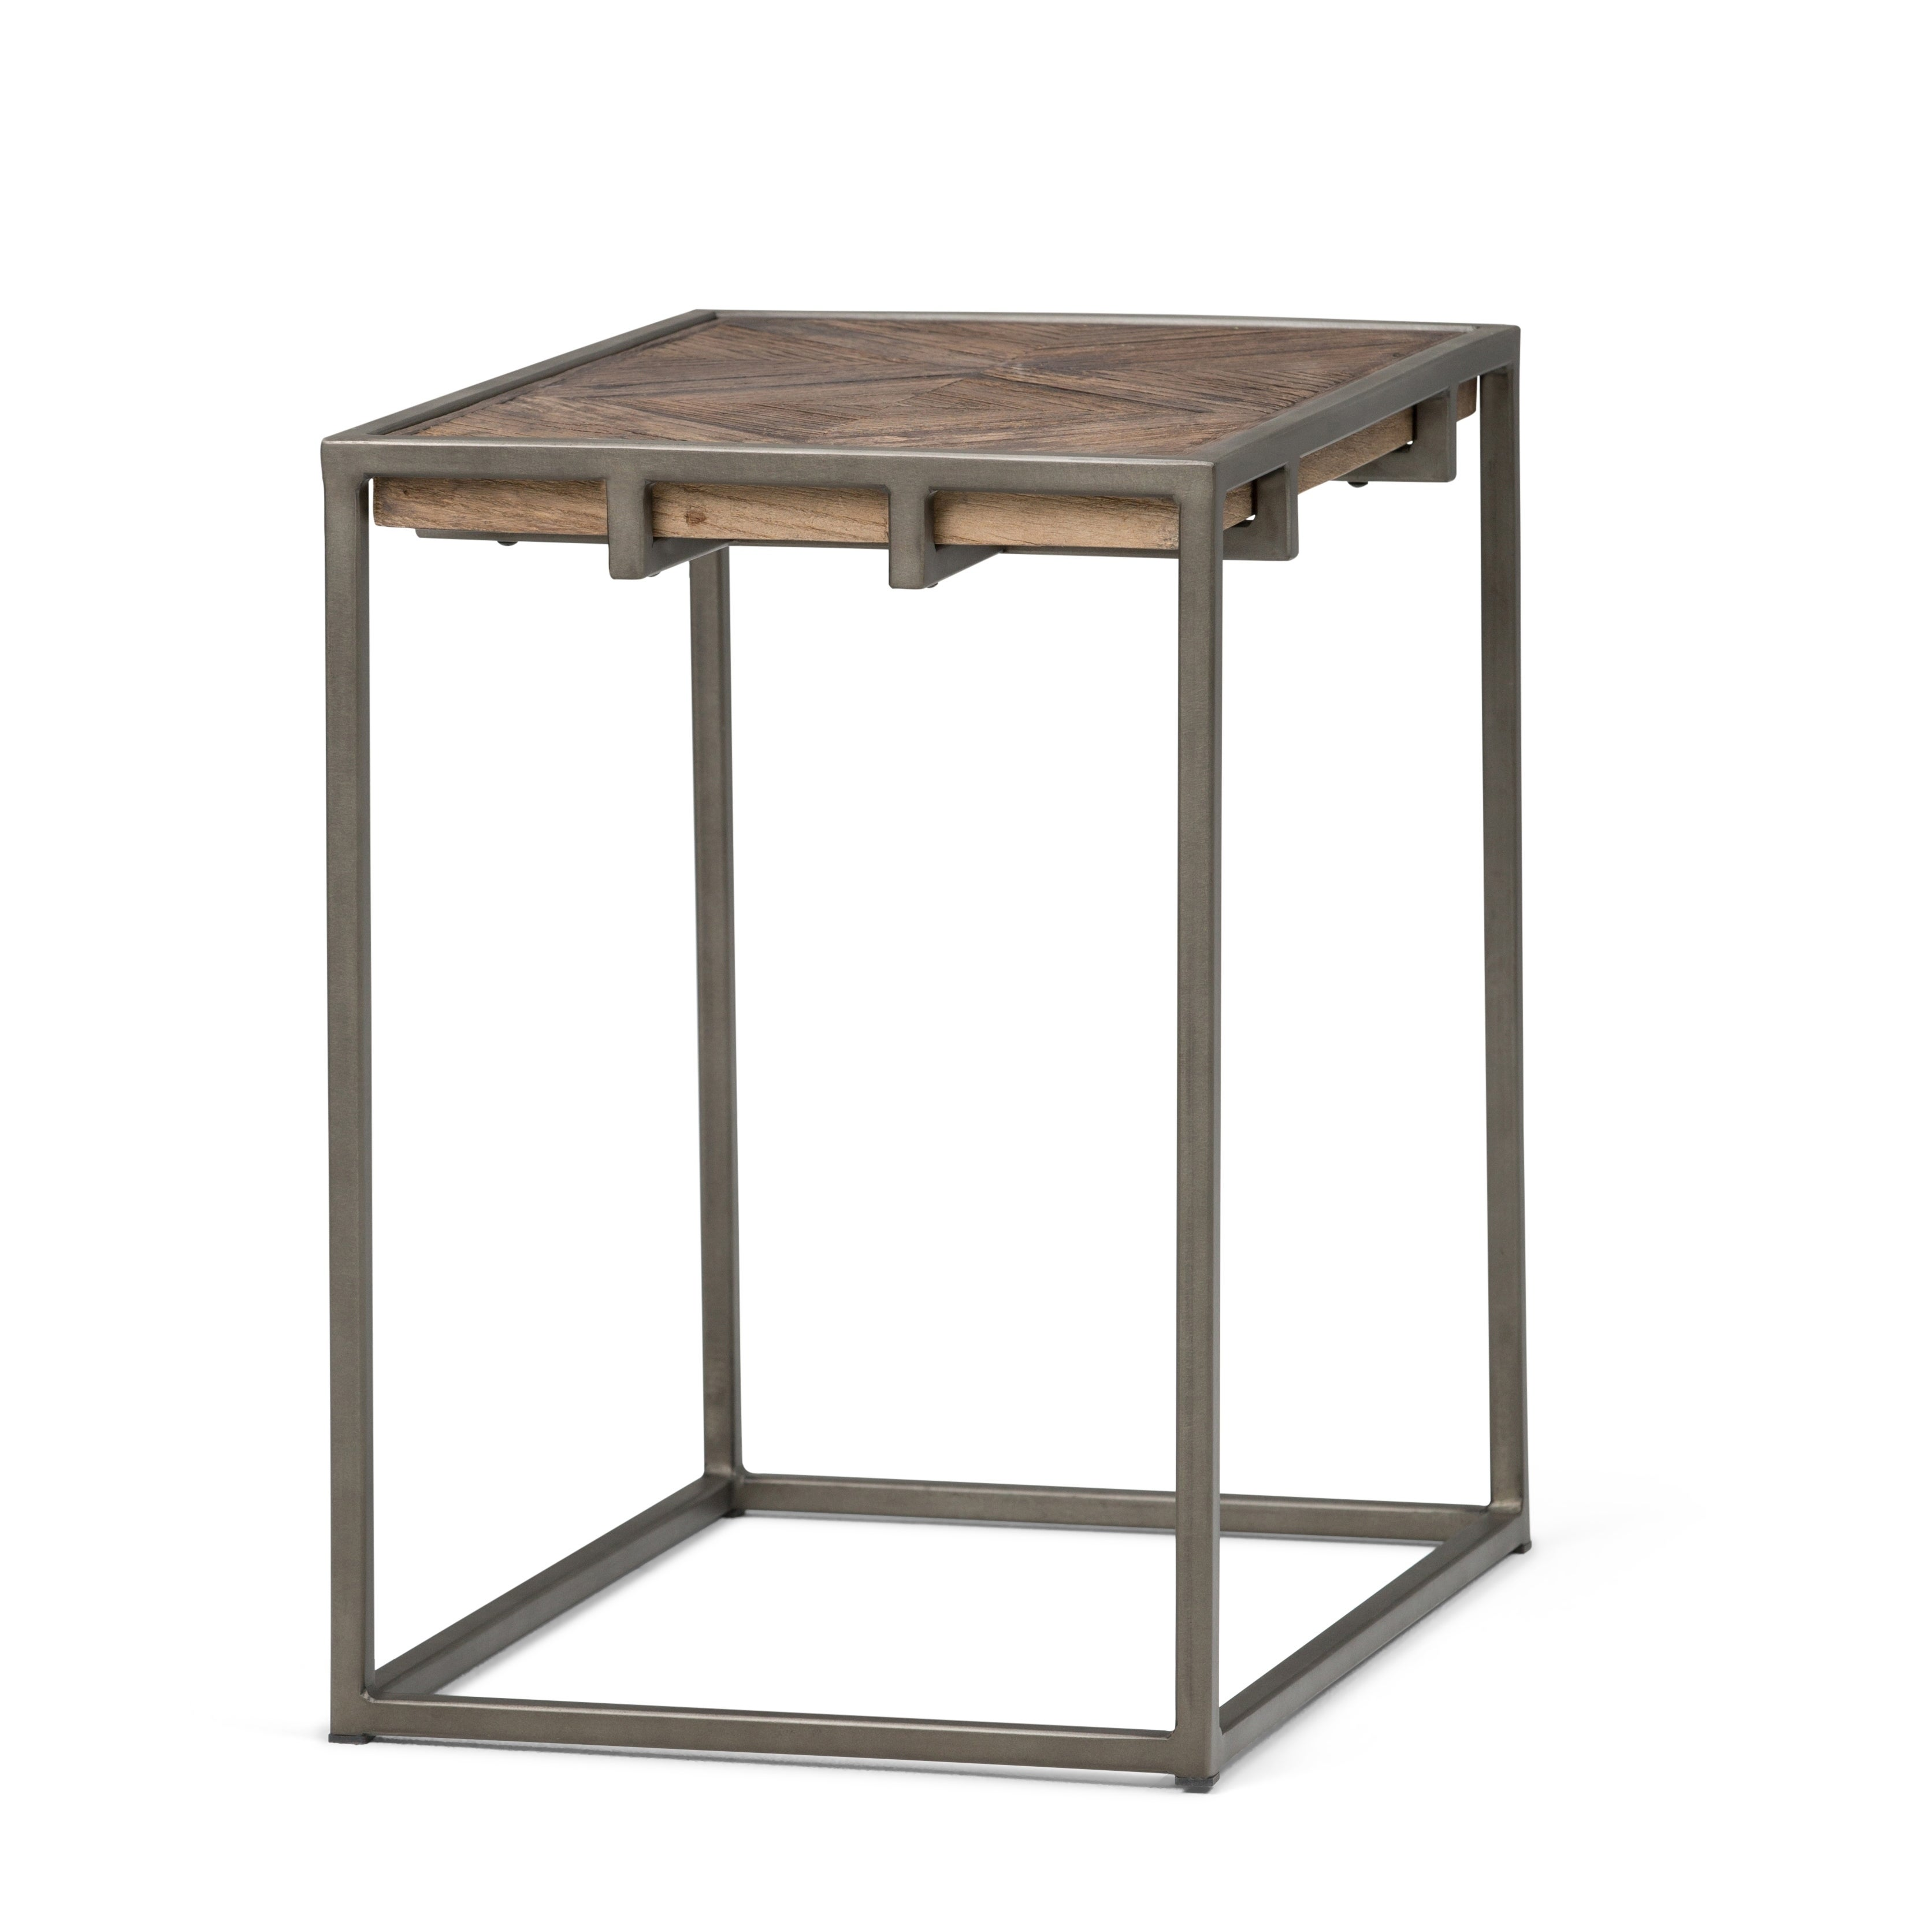 - Shop WYNDENHALL Abigail SOLID AGED ELM WOOD And Metal 14 Inch Wide